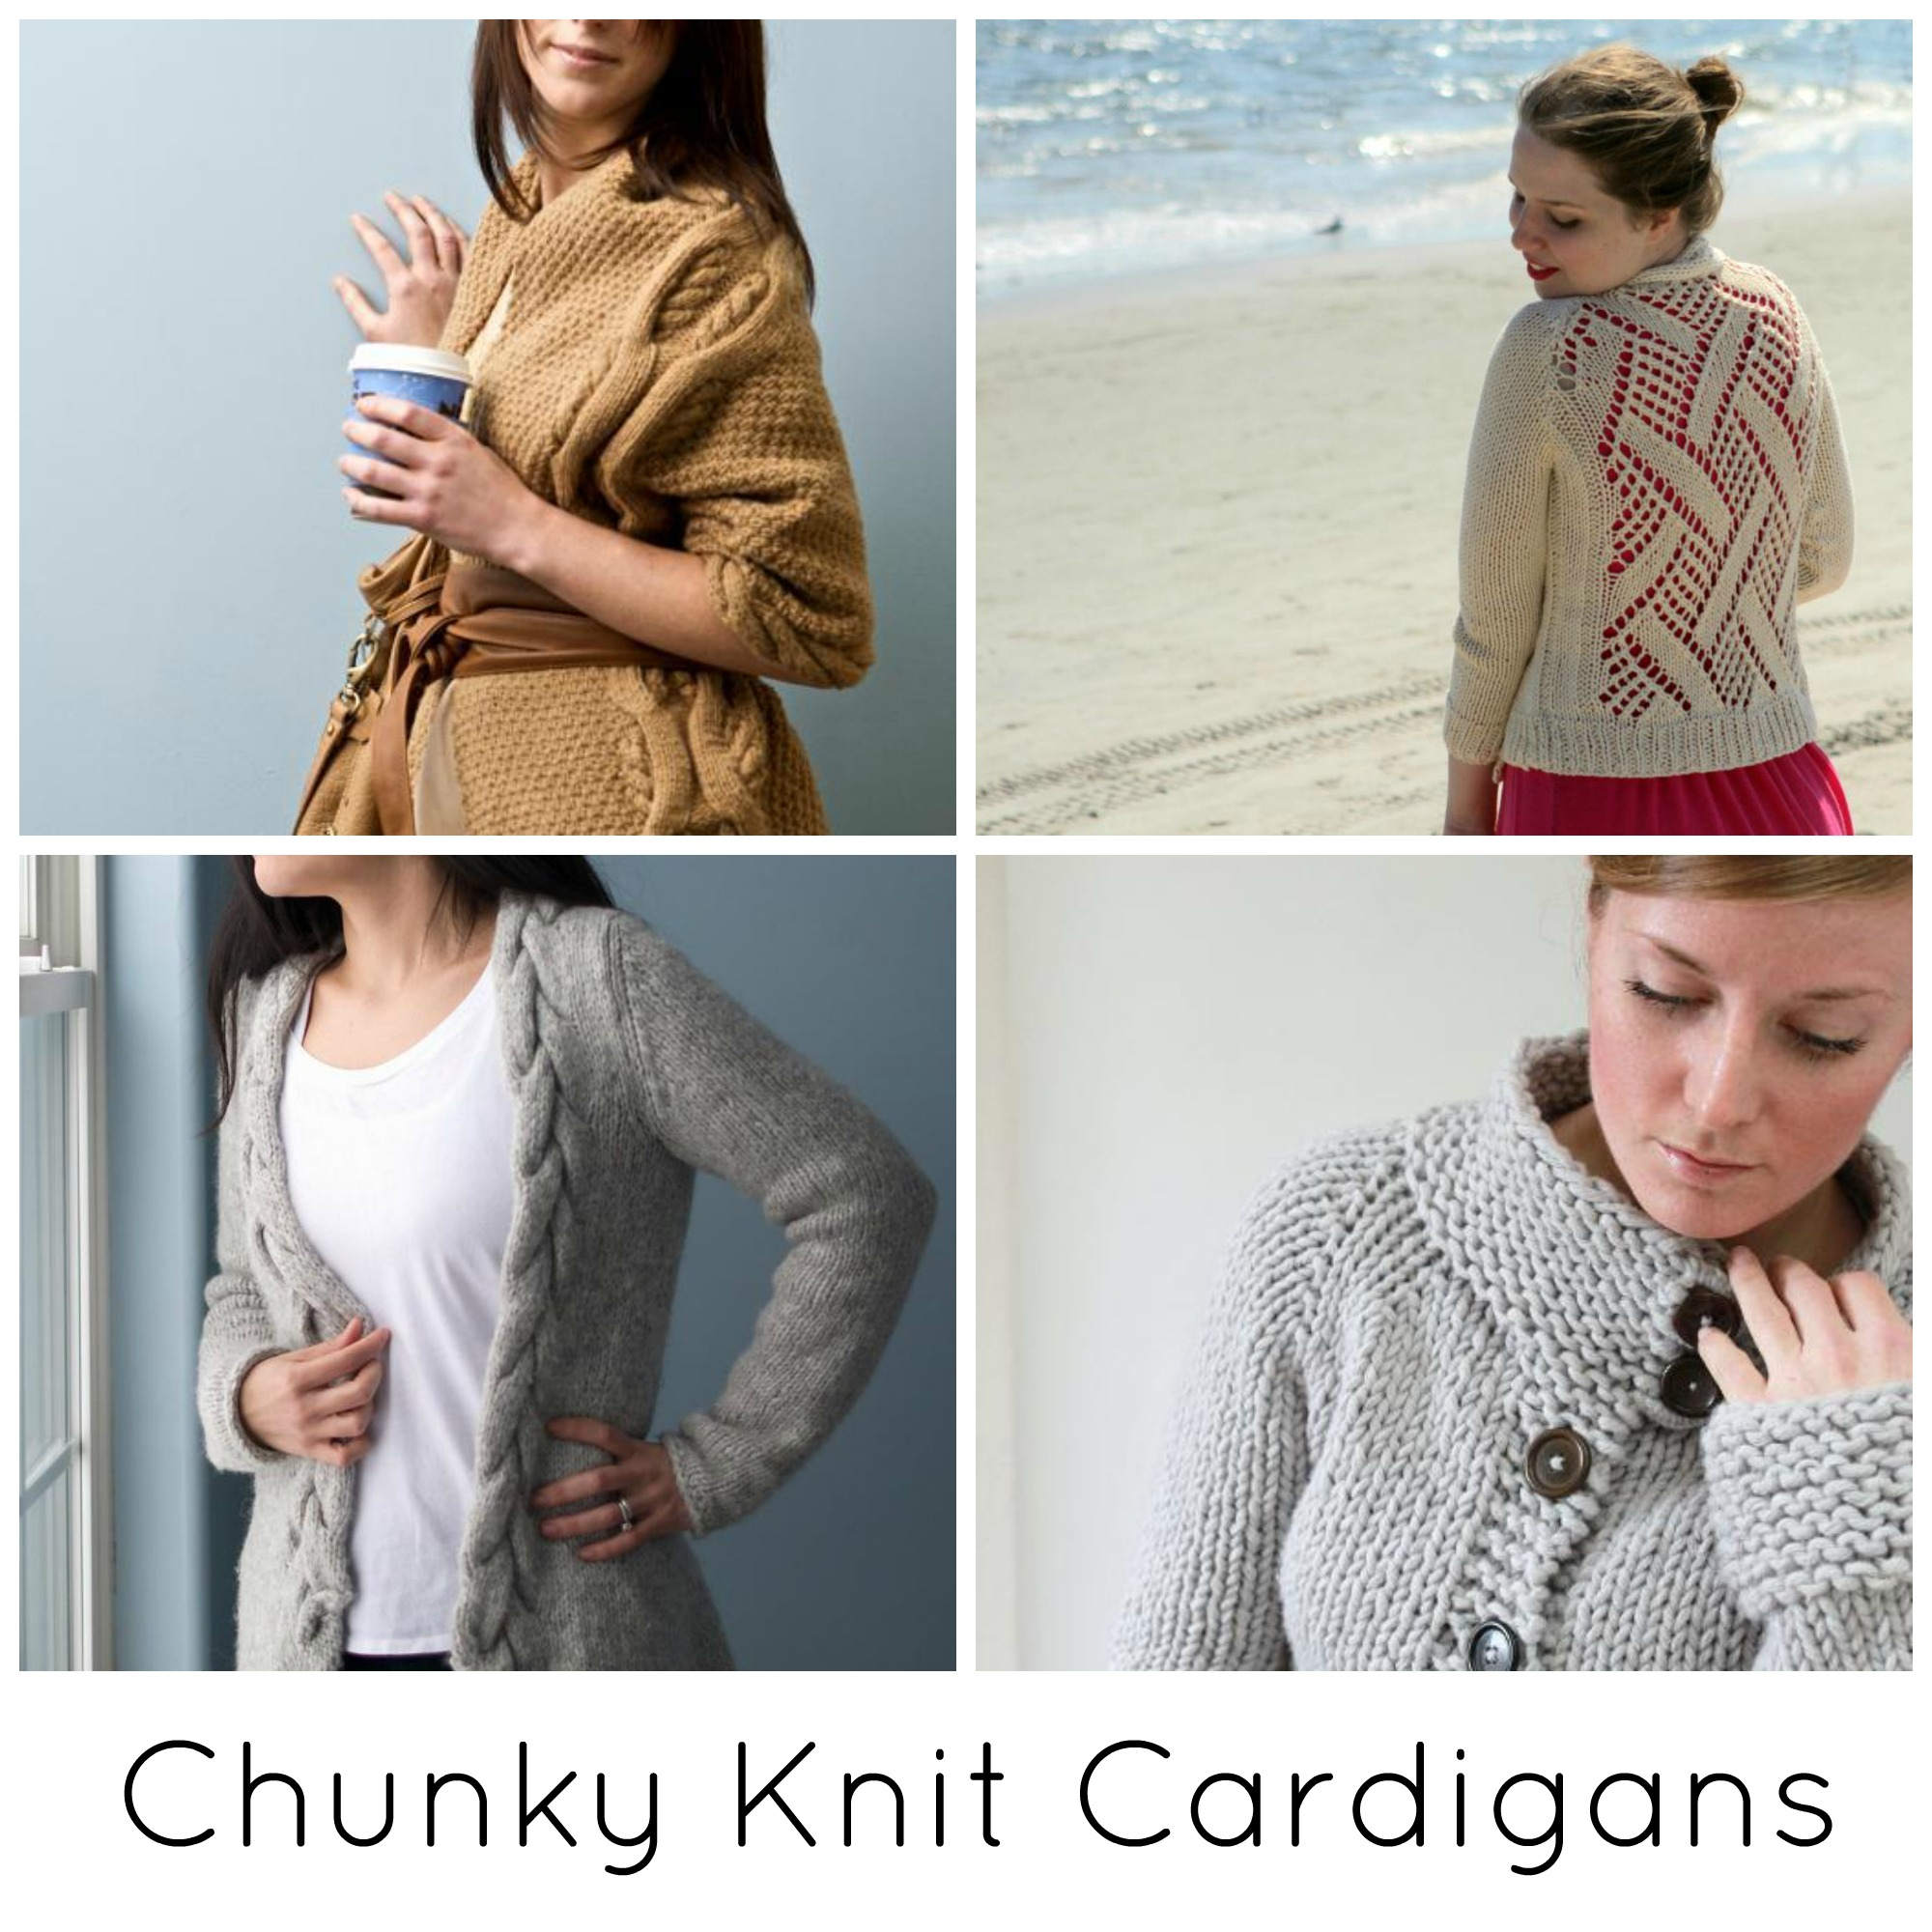 Cardigan Sweater Knitting Pattern The Coziest Chunky Knit Cardigan Patterns Ever